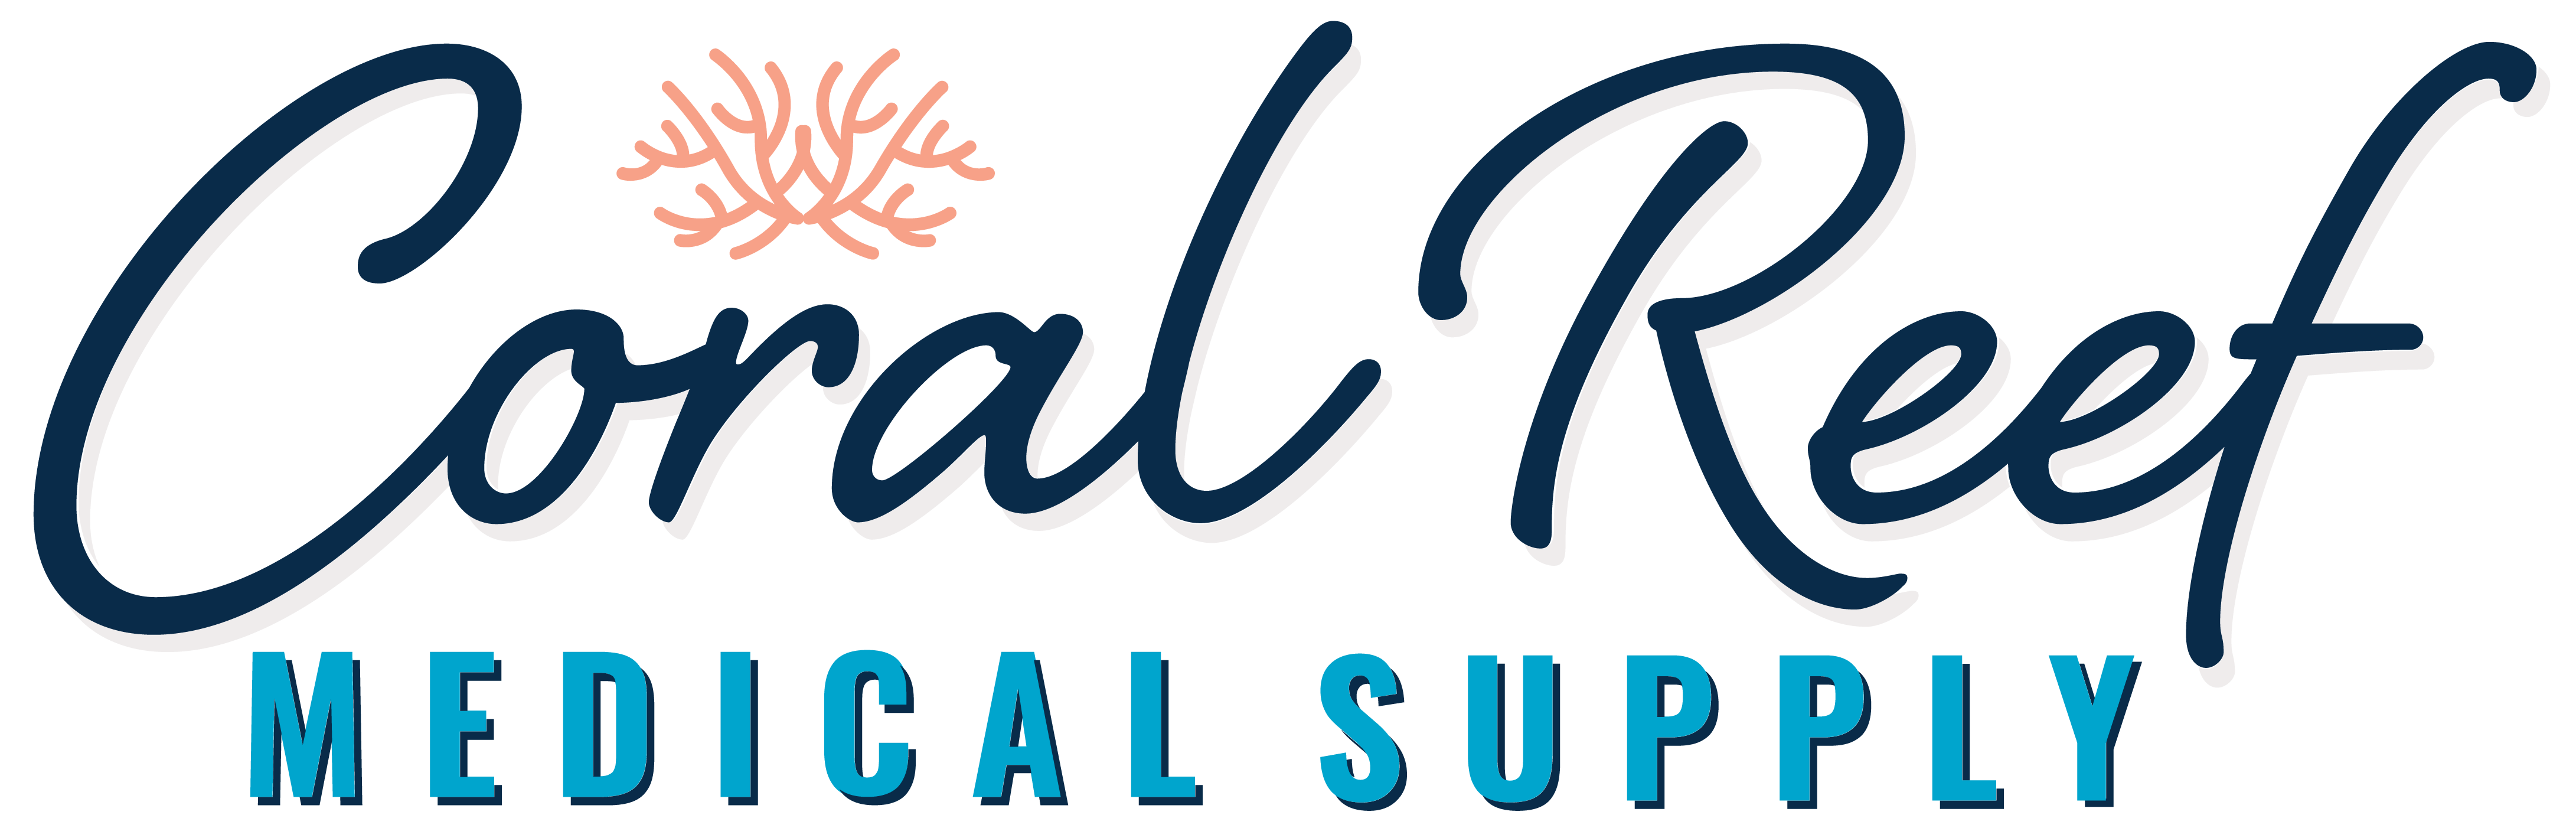 Coral Reef Medical Supply